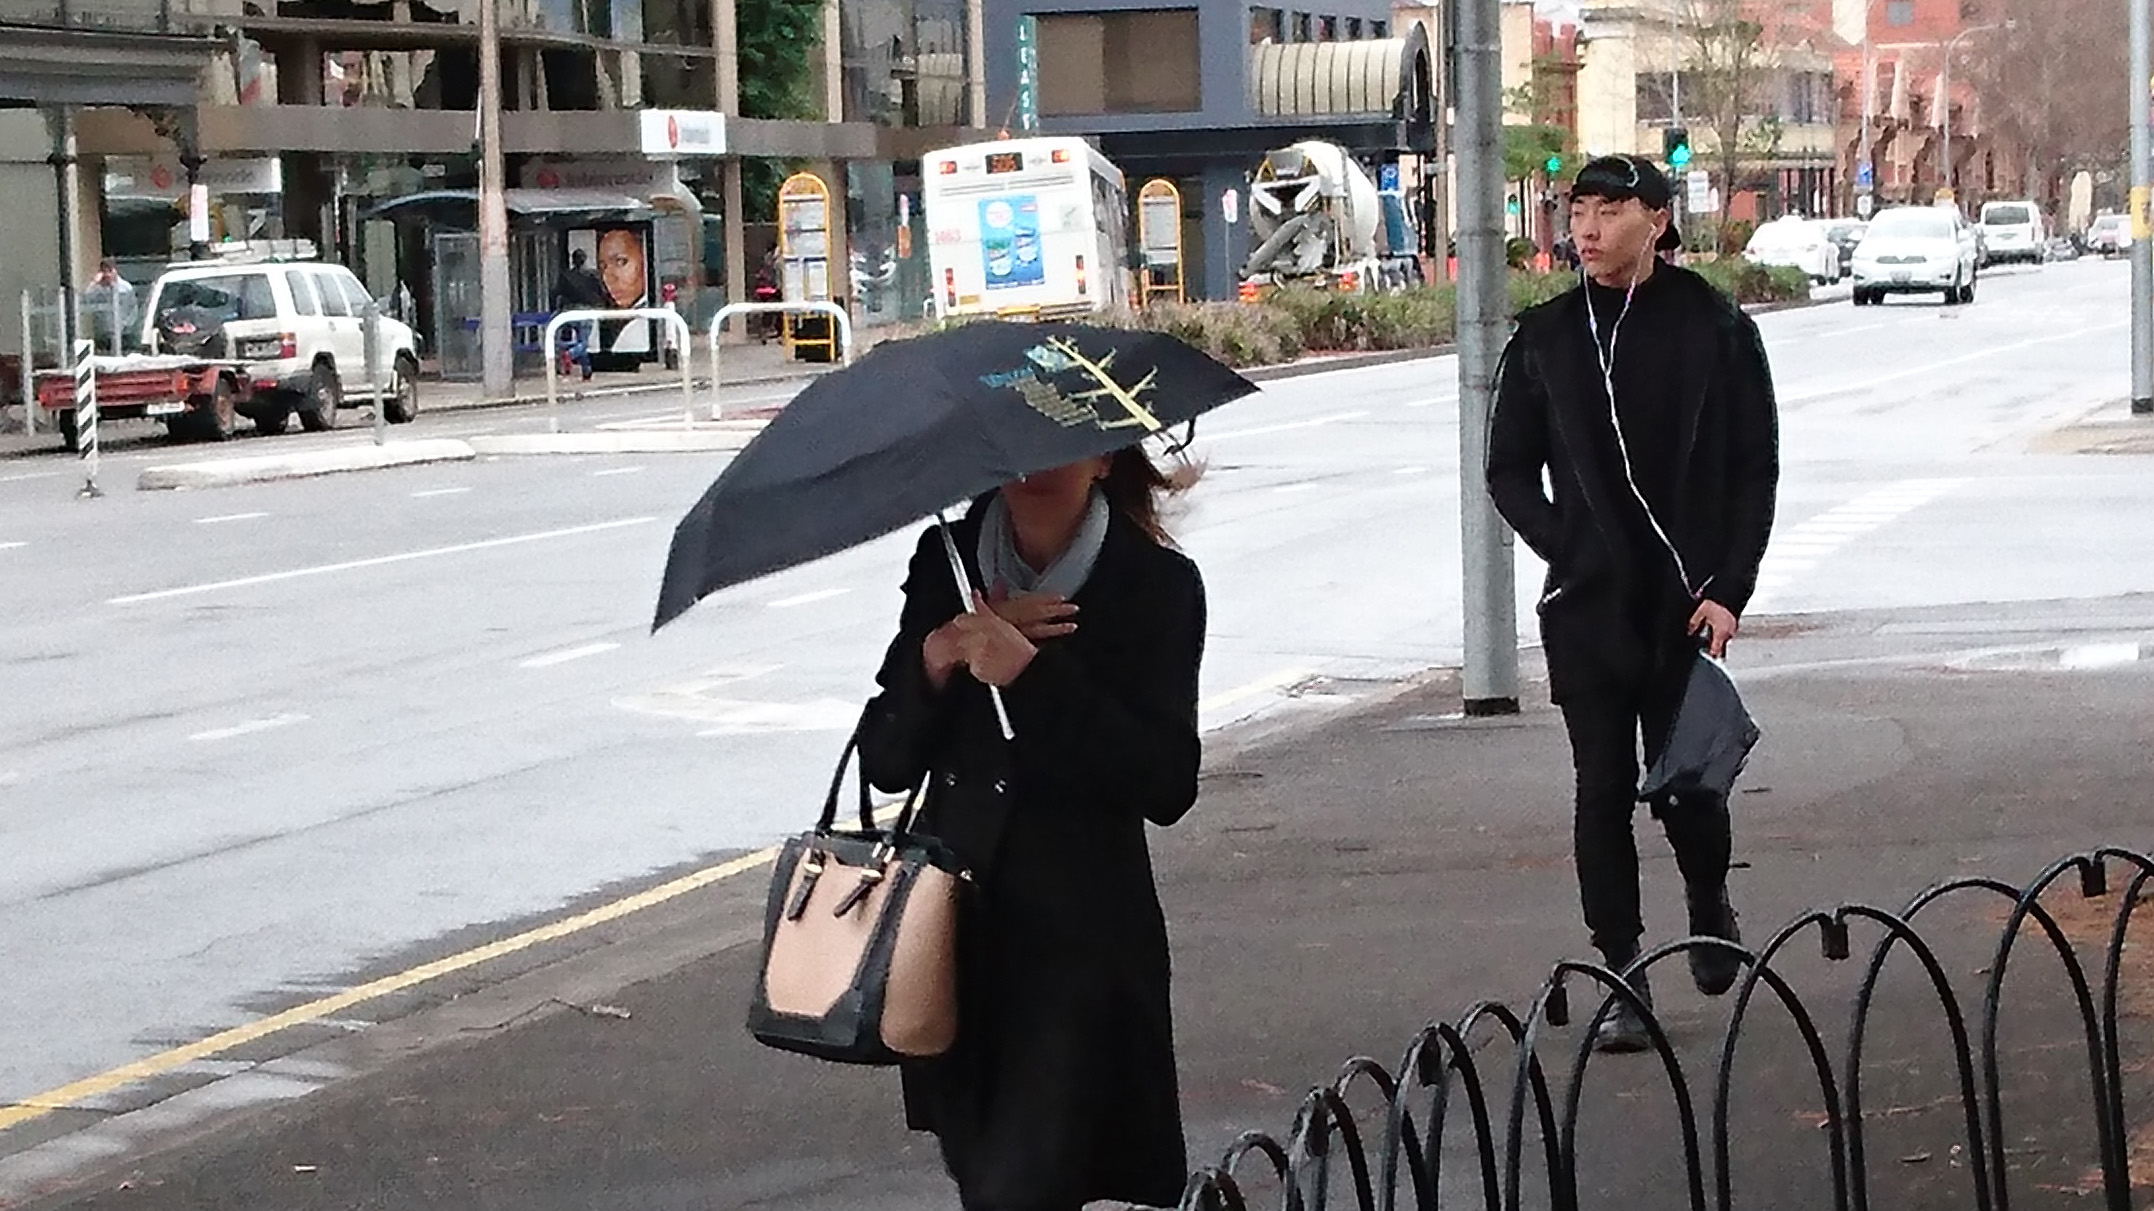 Residents in Adelaide are bracing for blustery conditions moving into the weekend. (Supplied)